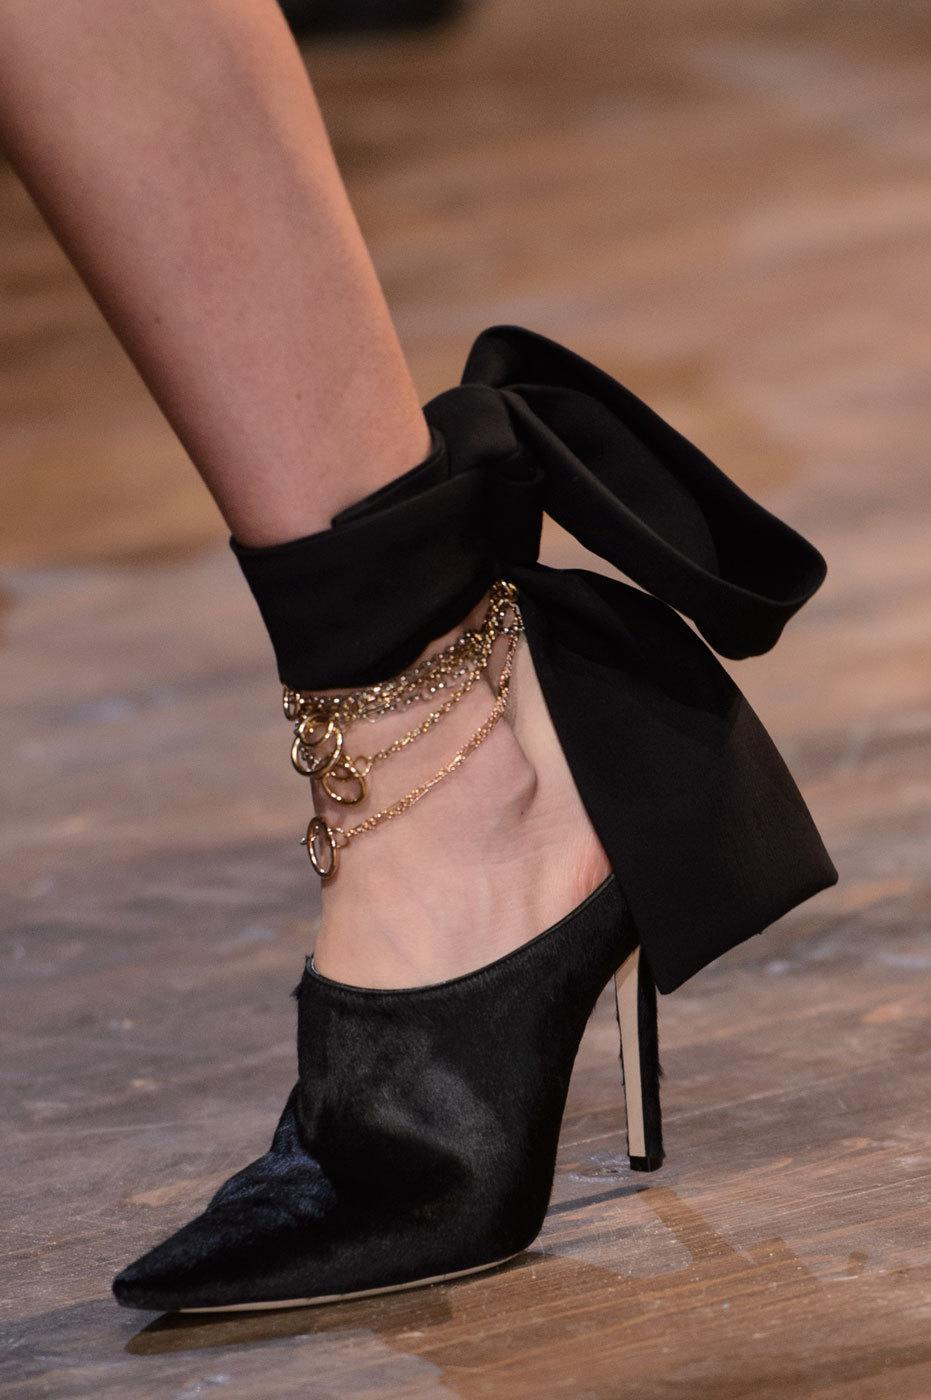 """<p>Pony hair sling backs + piles of gold anklets + velvet ribbons = fiesta for your feet at <a href=""""http://www.dior.com/home/en_us"""" rel=""""nofollow noopener"""" target=""""_blank"""" data-ylk=""""slk:Christian Dior."""" class=""""link rapid-noclick-resp"""">Christian Dior.</a> <i>Photos: Imaxtree</i></p>"""